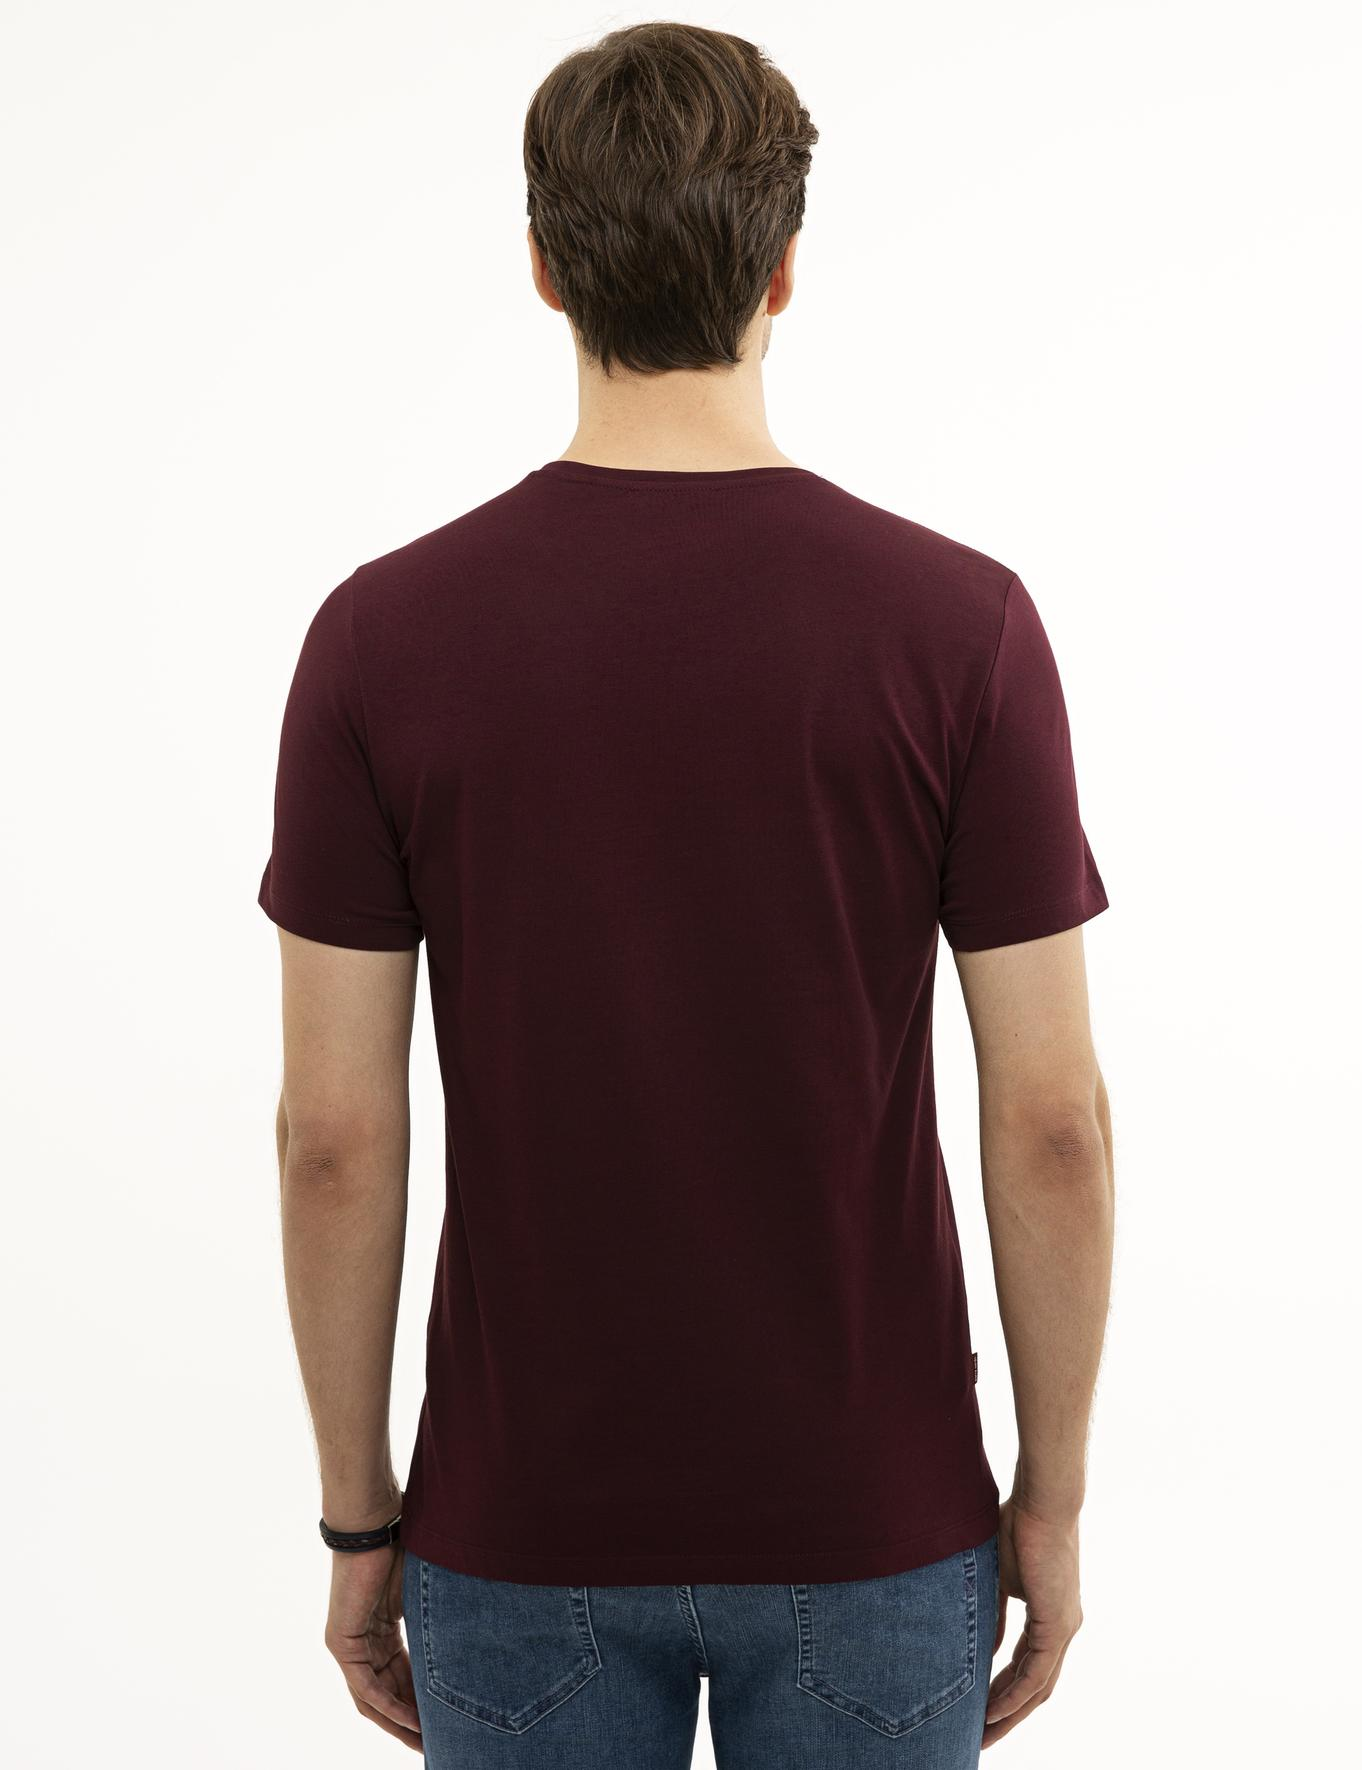 Bordo Slim Fit Bisiklet Yaka T-Shirt